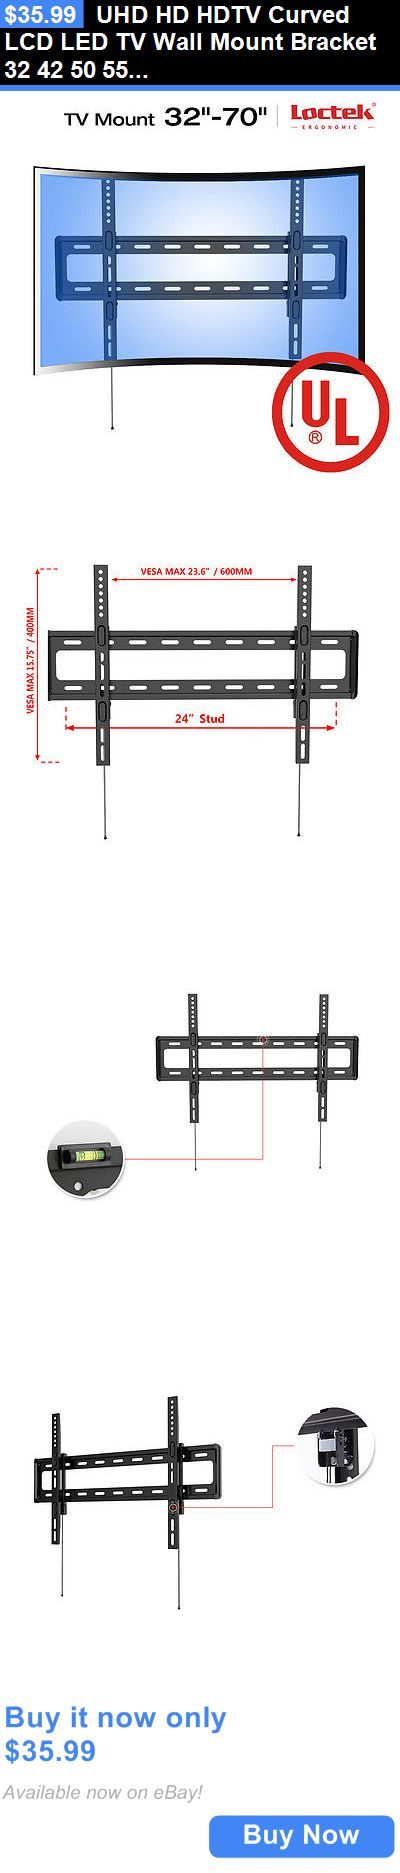 TV Mounts and Brackets: Uhd Hd Hdtv Curved Lcd Led Tv Wall Mount Bracket 32 42 50 55 60 65 70 Loctek R1 BUY IT NOW ONLY: $35.99